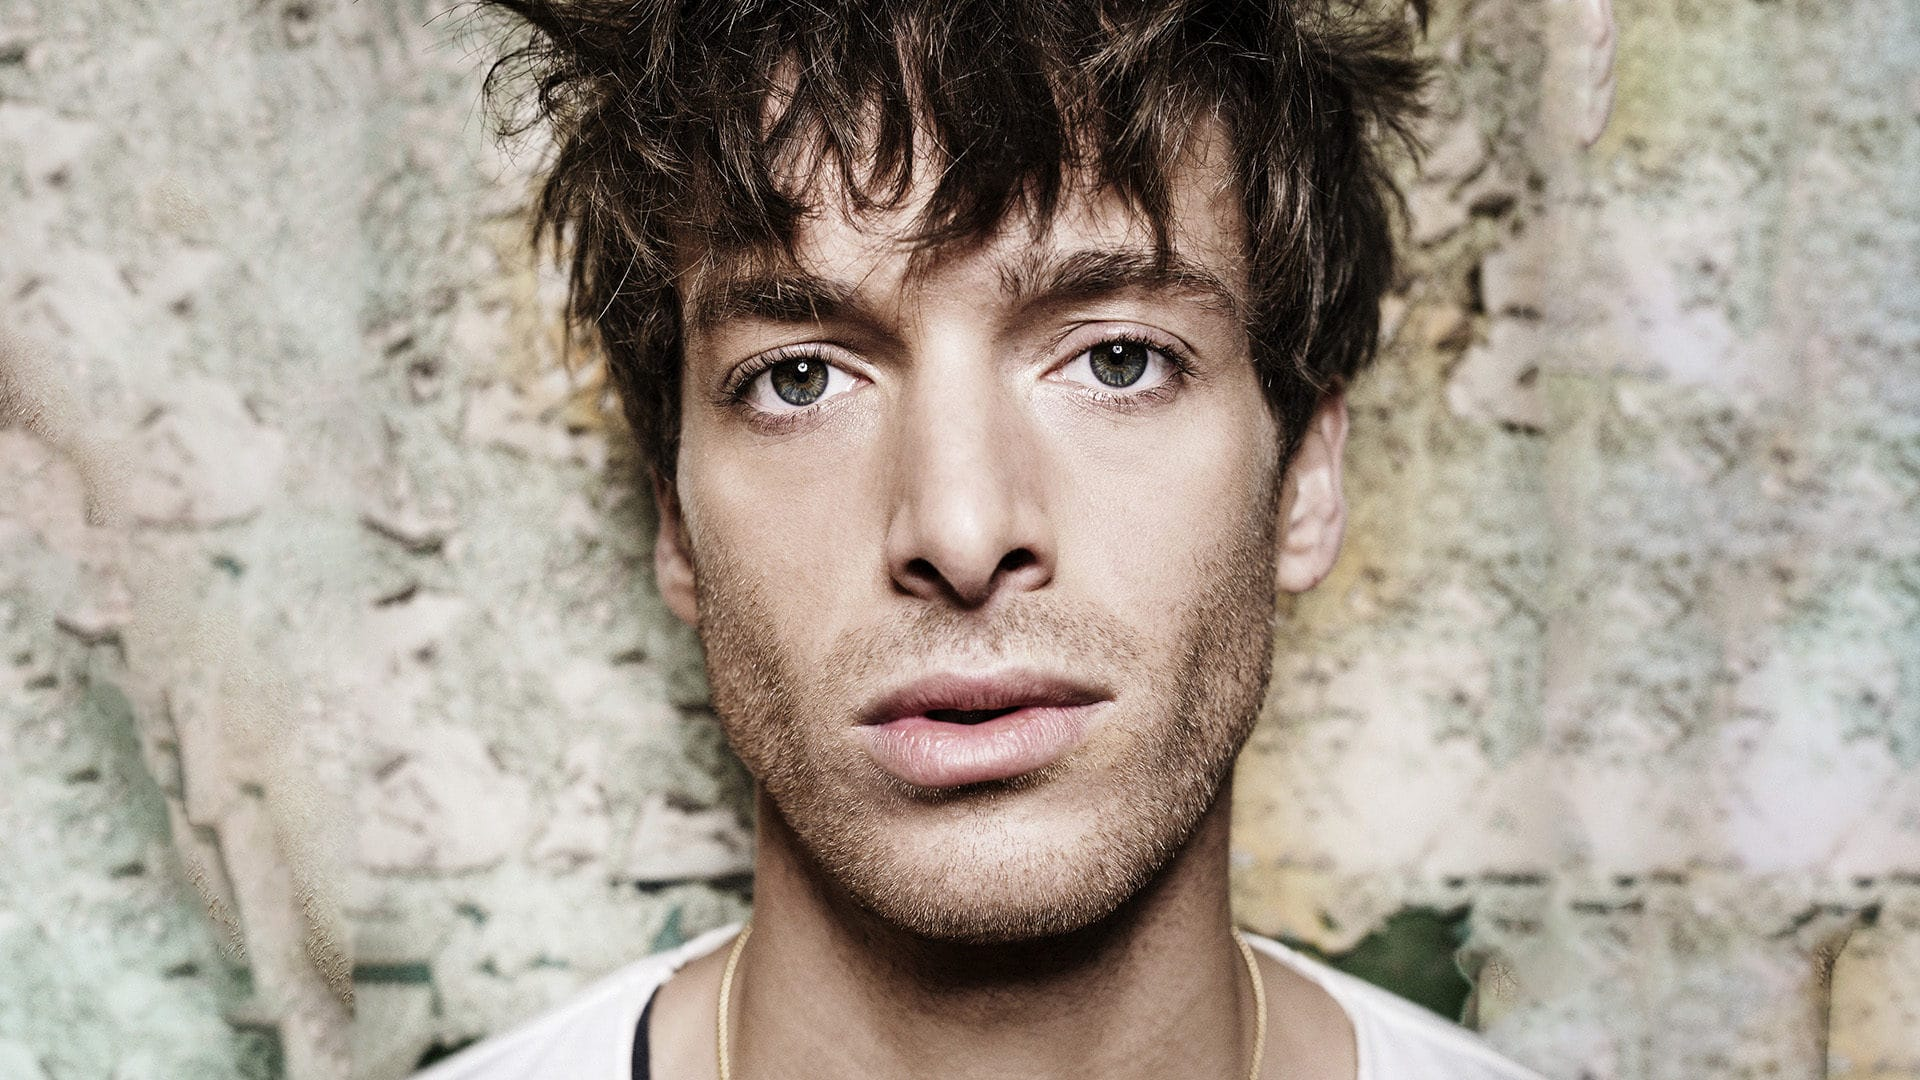 Paolo Nutini - Don't Let Me Down